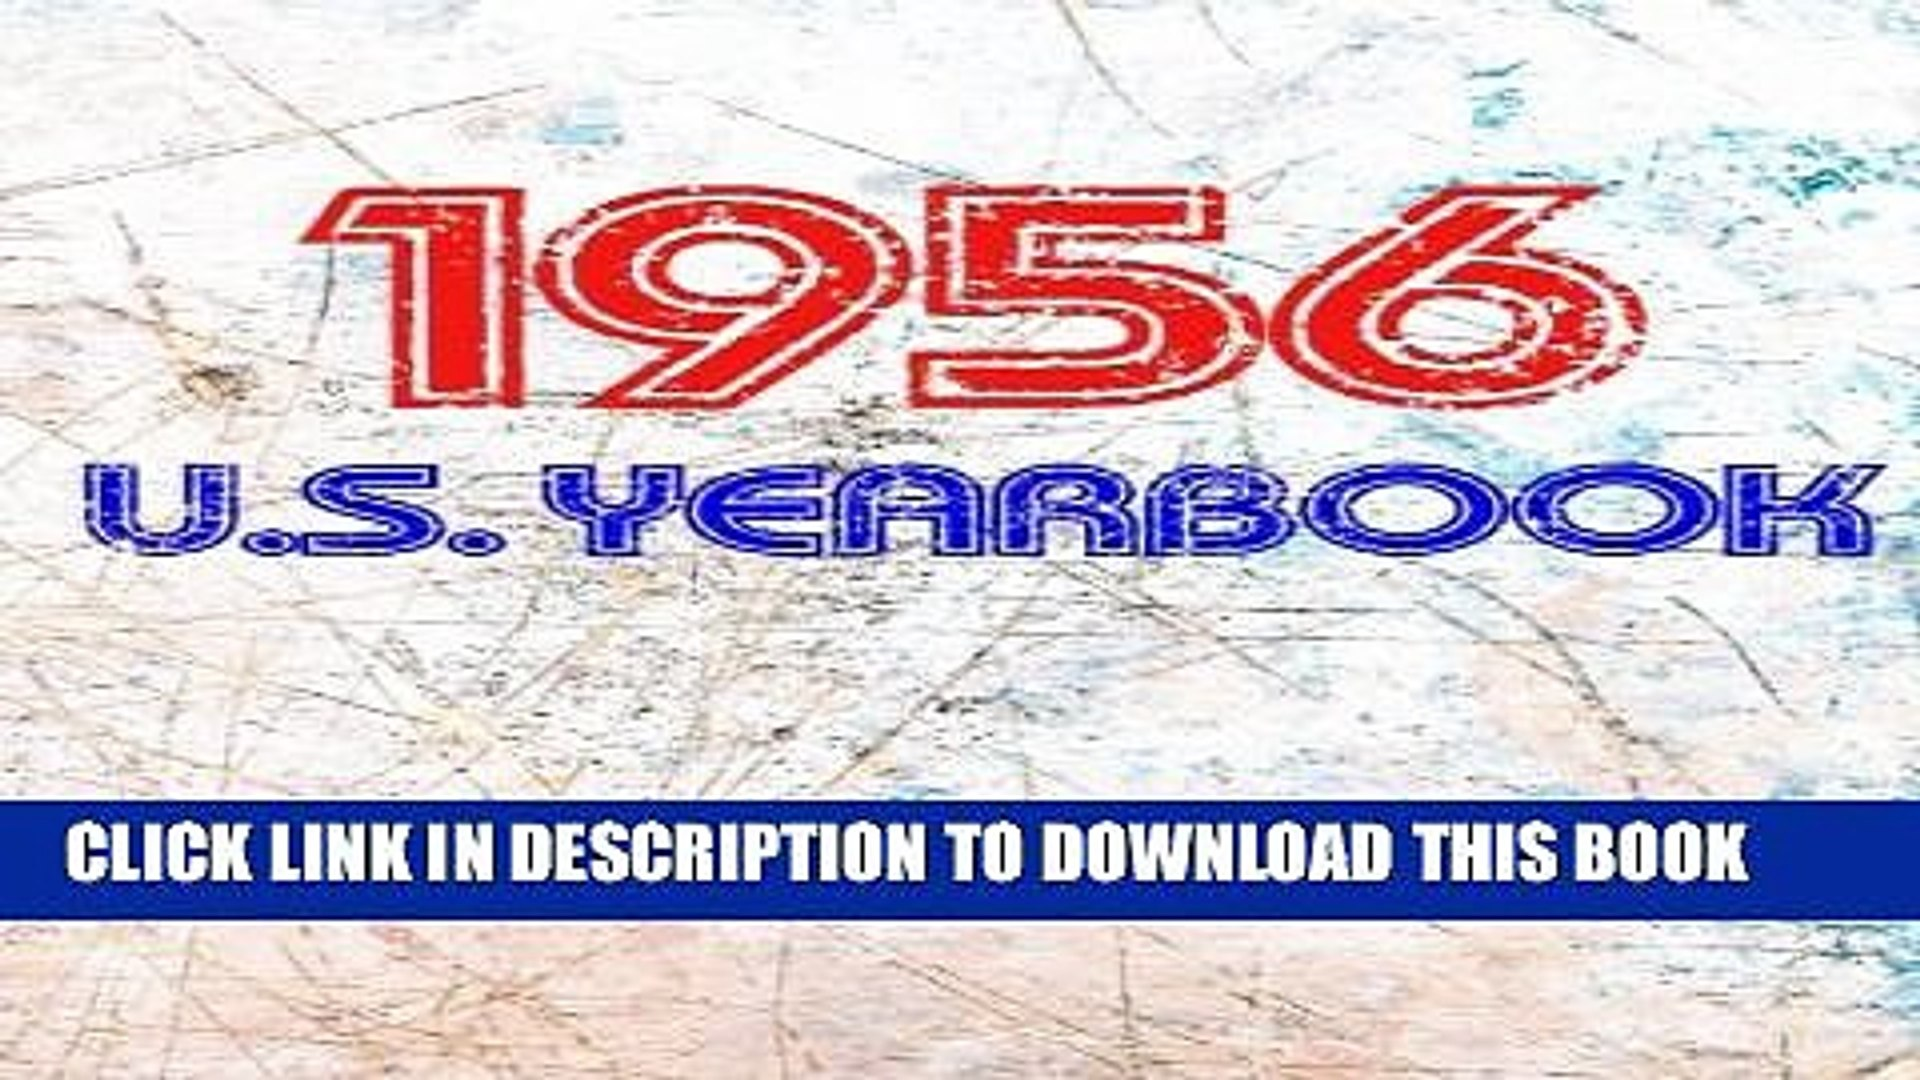 Collection Book The 1956 U.S. Yearbook: Interesting facts from 1956 including News, Sport, Music,